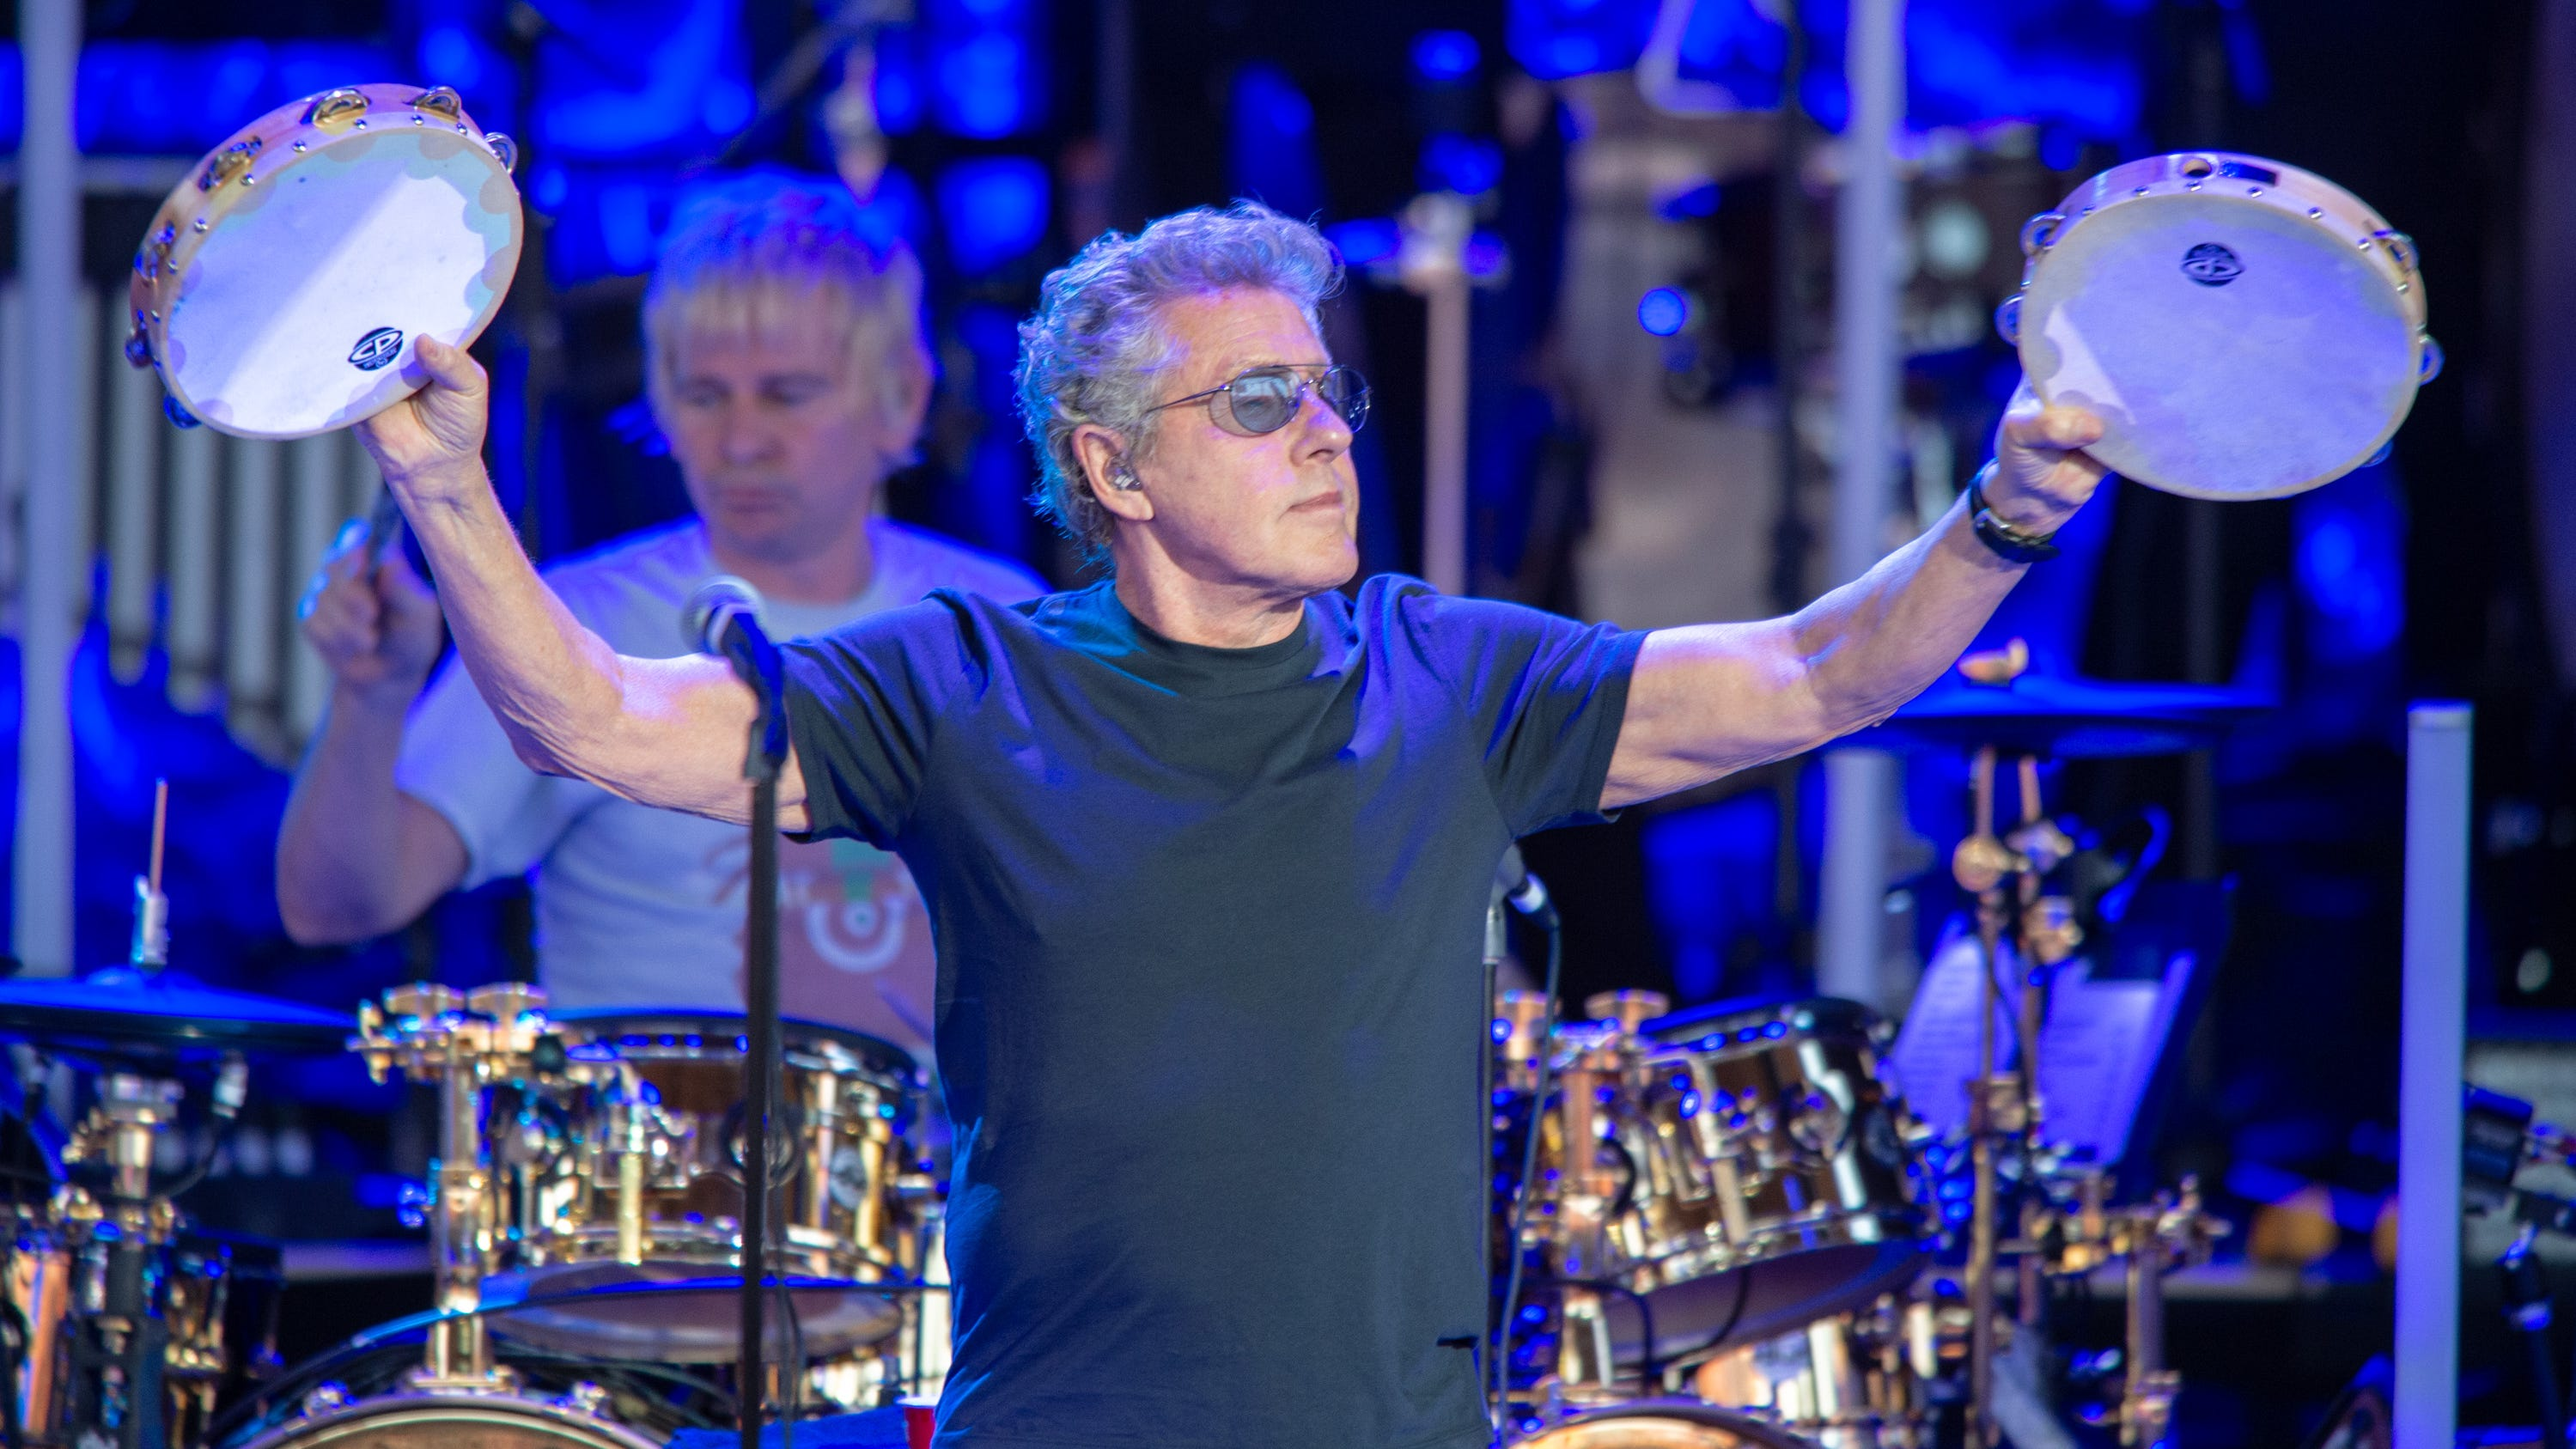 Roger Daltrey performs with The Who during their...